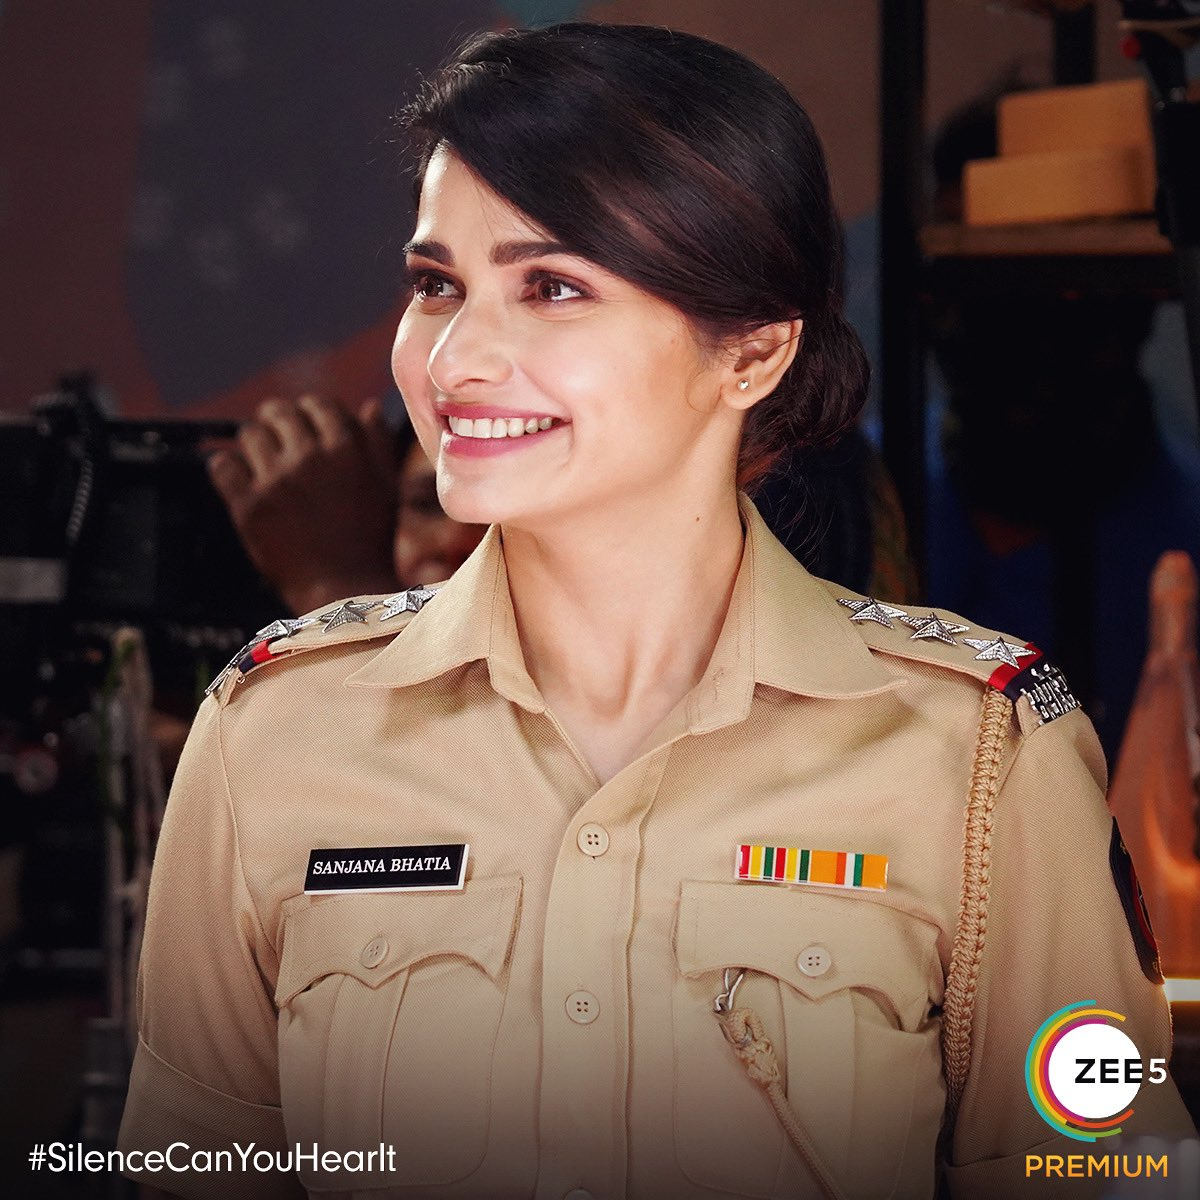 Forever indebted to Women cops all across the globe for setting an example that we can all be,do, & take a stand on anything we want! Women like Inspector Sanjana hv d strength to change d world,one smile at a time #HappyWomensDay to ALL THE AMAZING WOMEN in the world, everyday💜